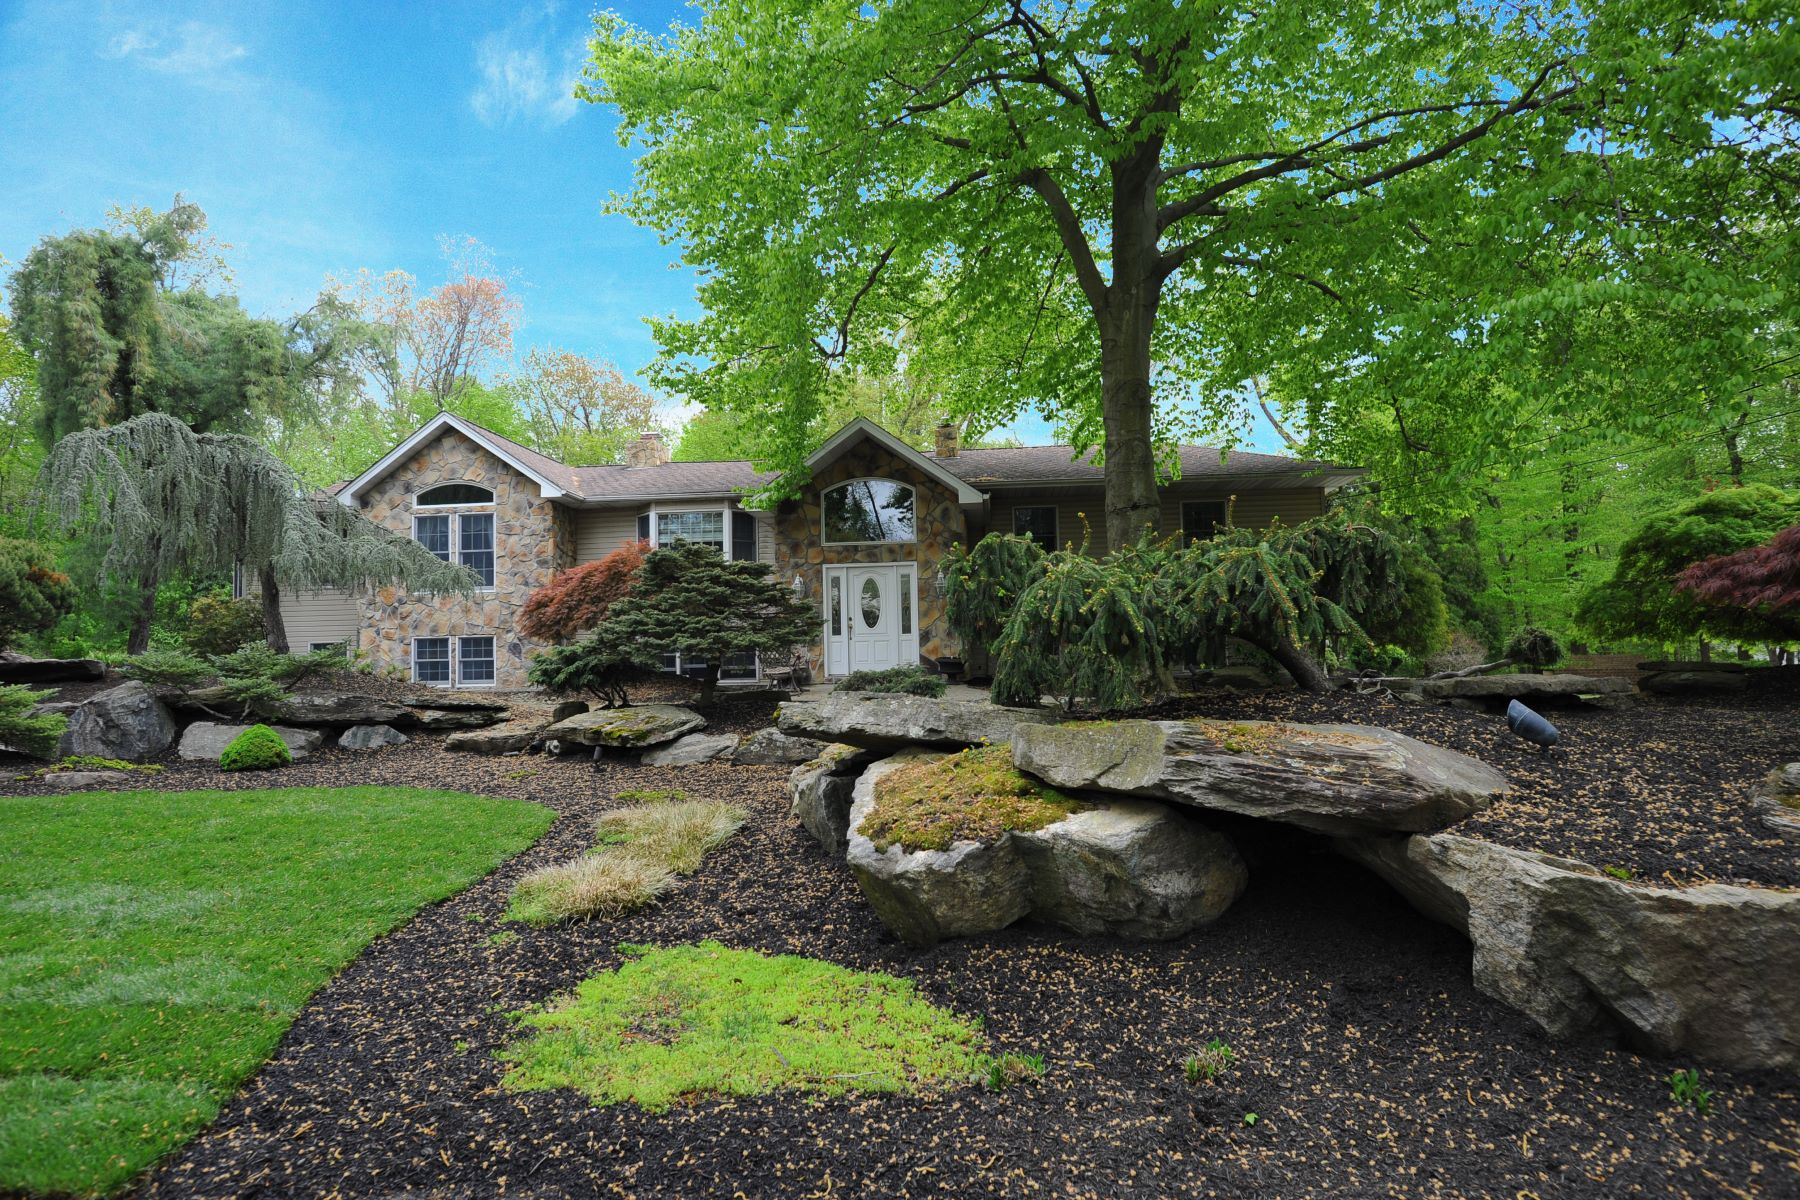 Single Family Home for Sale at Beautiful Expanded Home 4 Van Wyck St Montvale, New Jersey 07645 United States